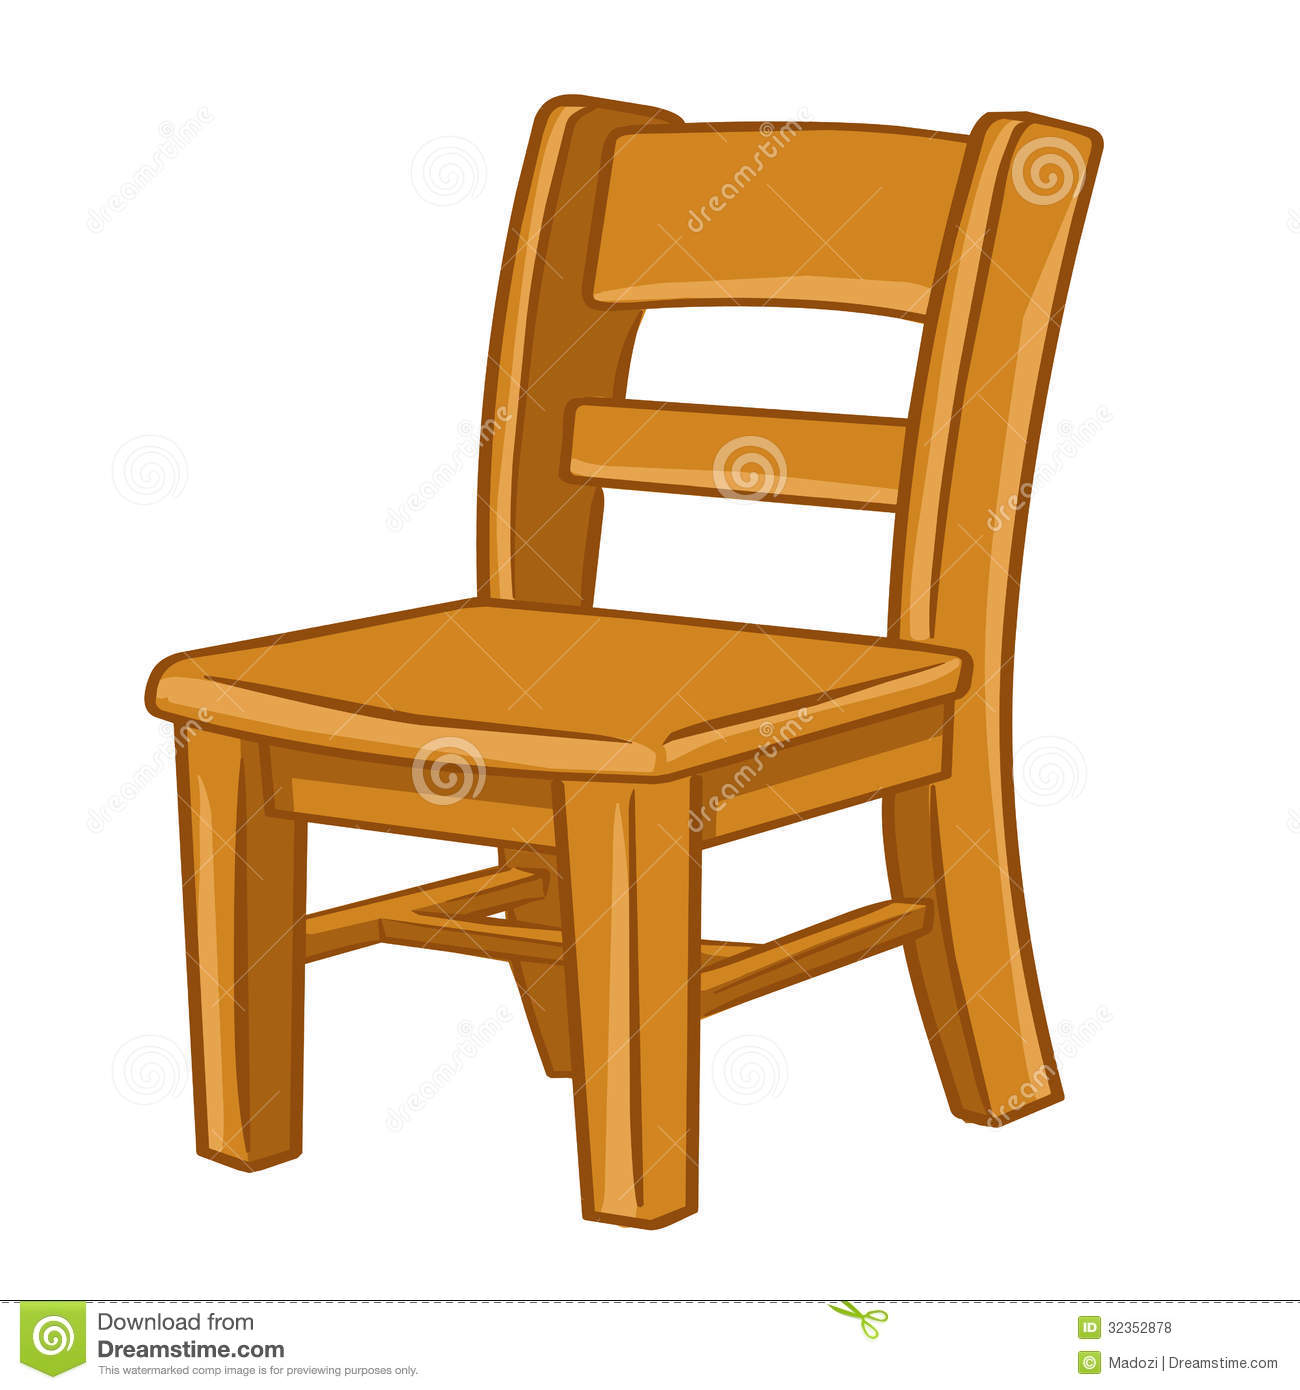 Wood chair isolated illustration royalty free stock photos